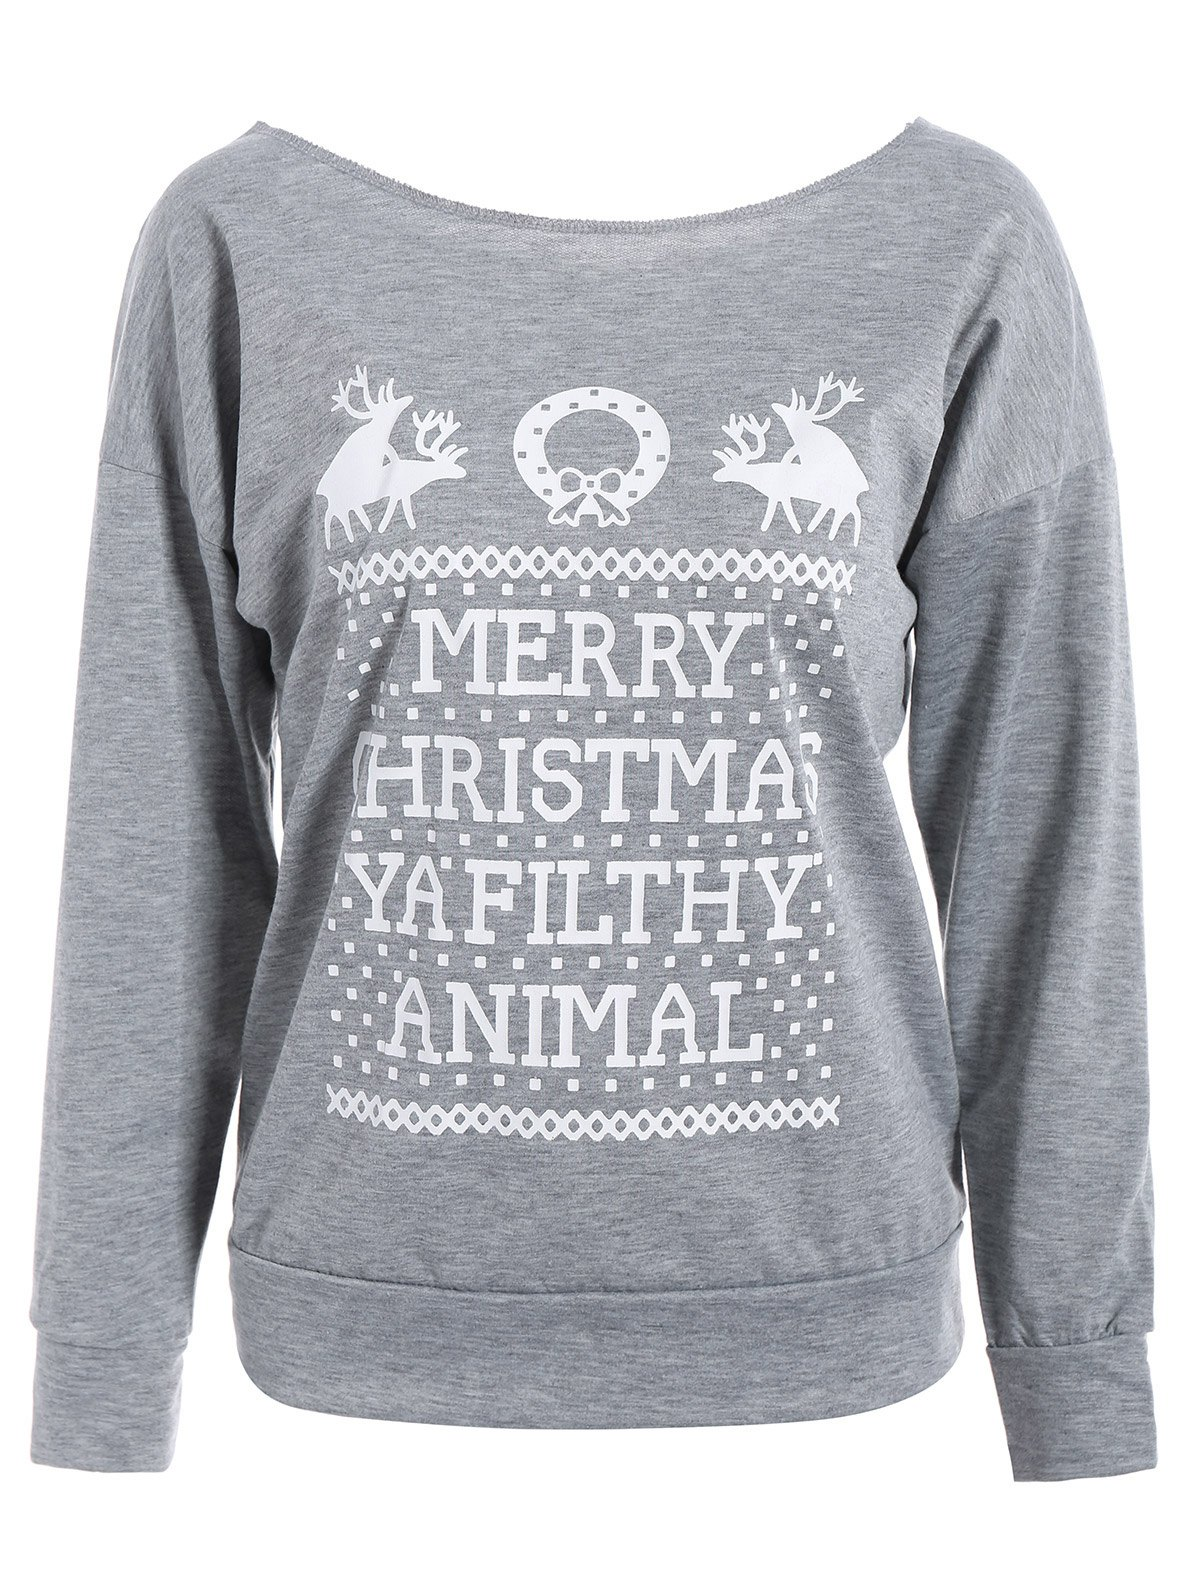 Skew Neck Merry Christmas Print Sweatshirt - GRAY S